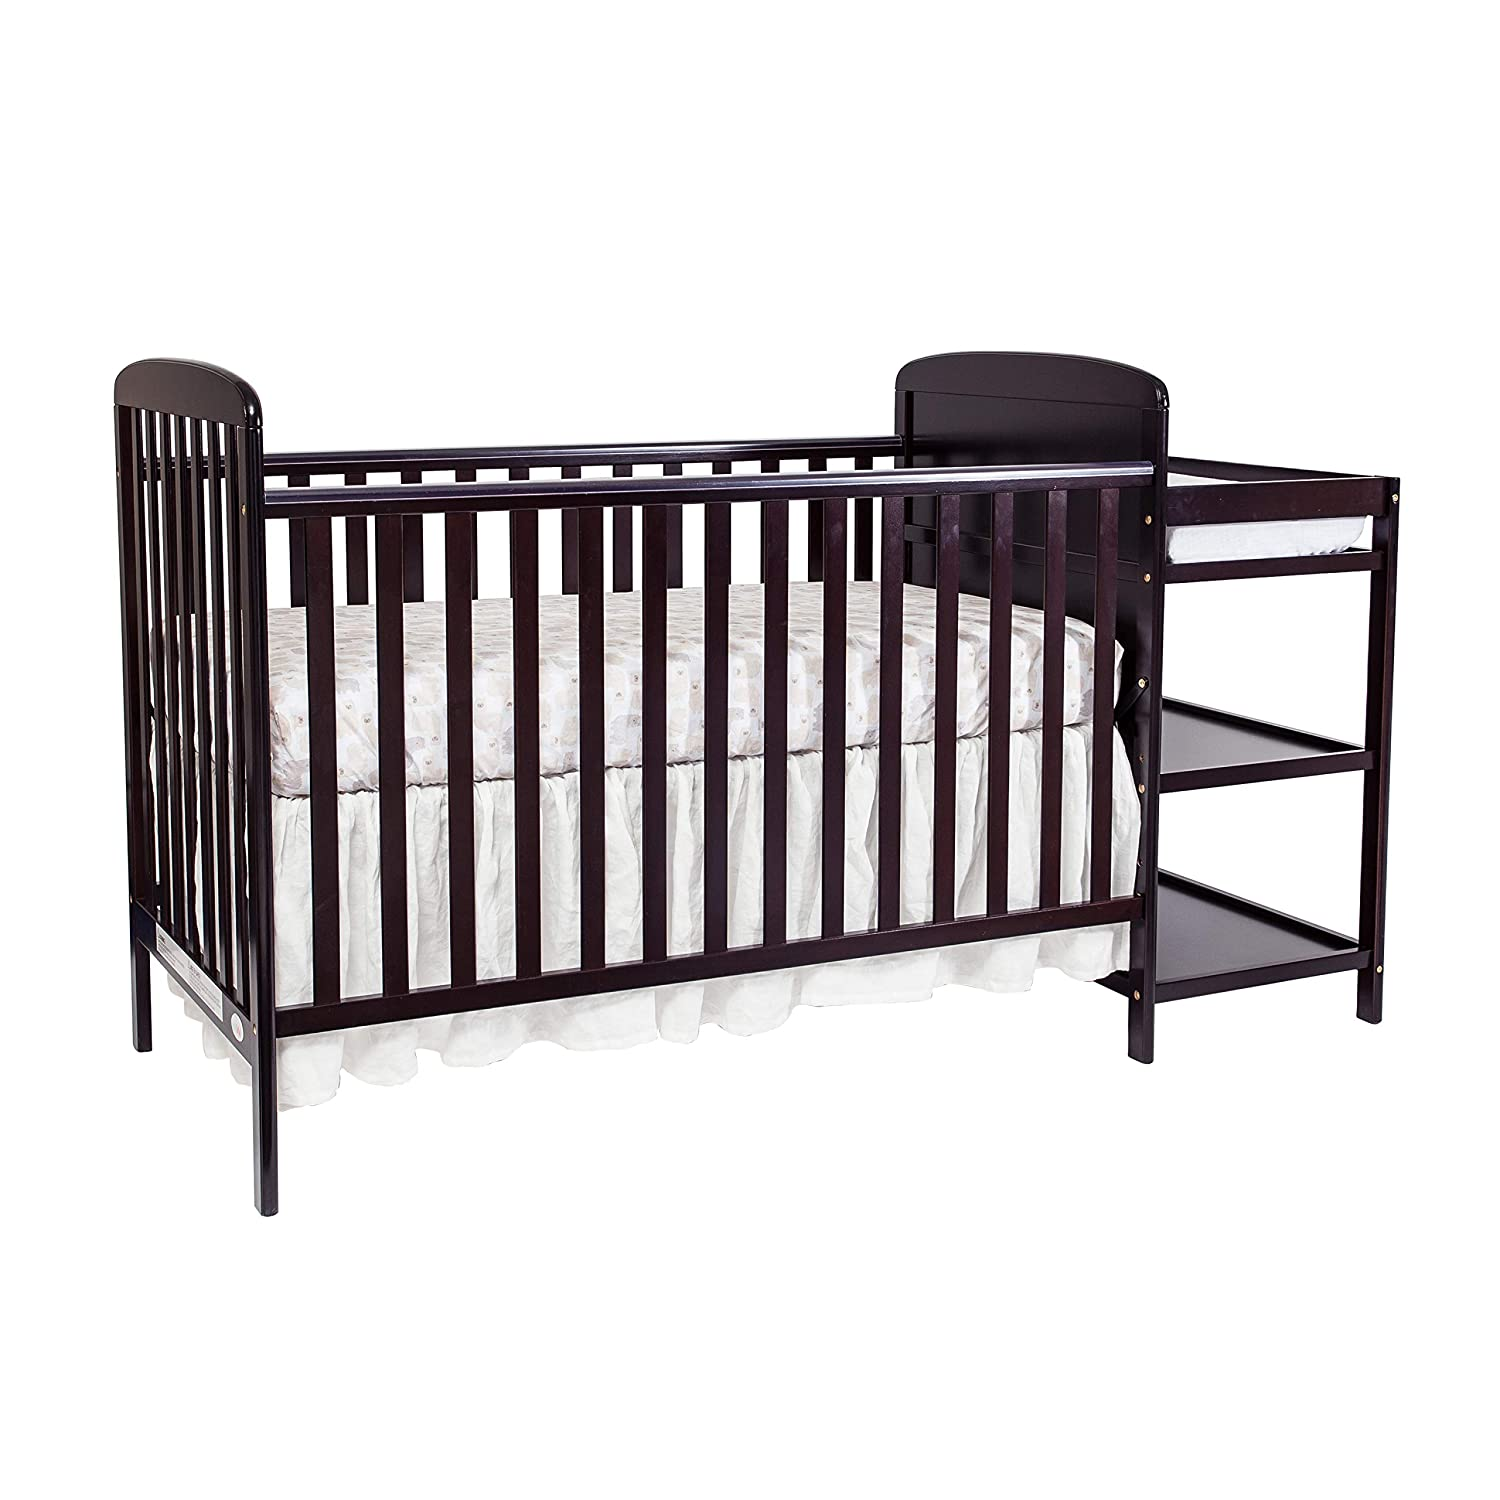 Suite Bebe Ramsey 3 in 1 Convertible Crib Changer, Espresso